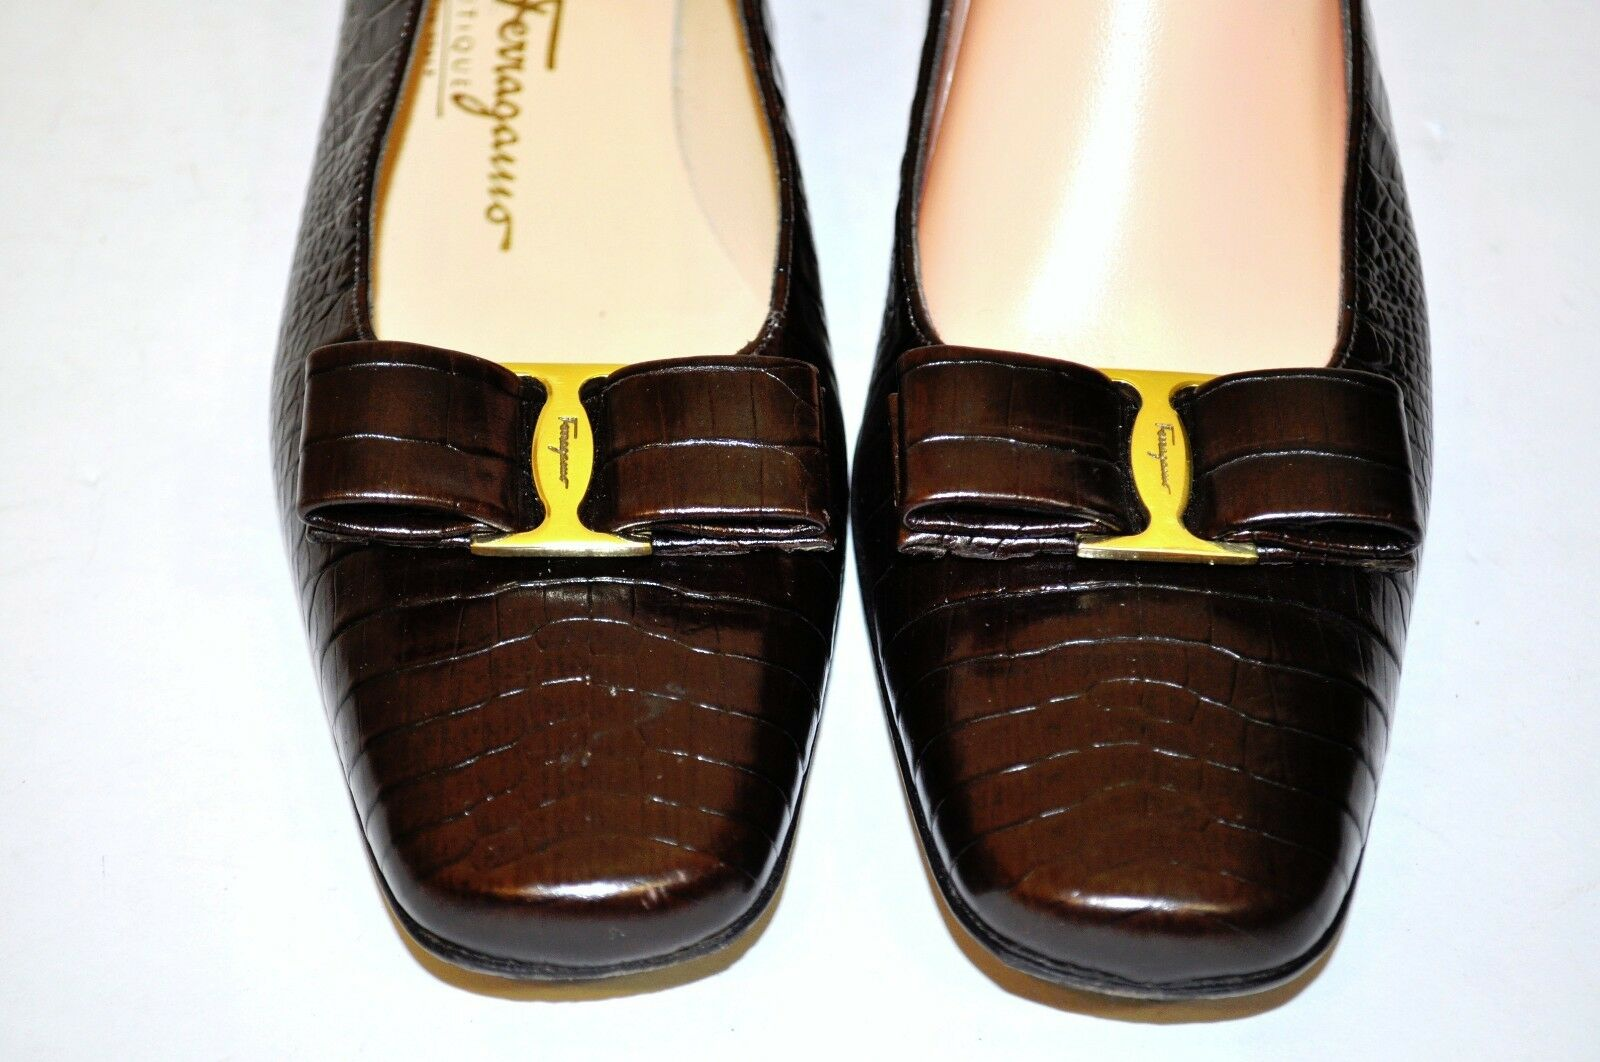 Salvatore Ferragamo Vara Bow Brown shoes Croc Leather 1